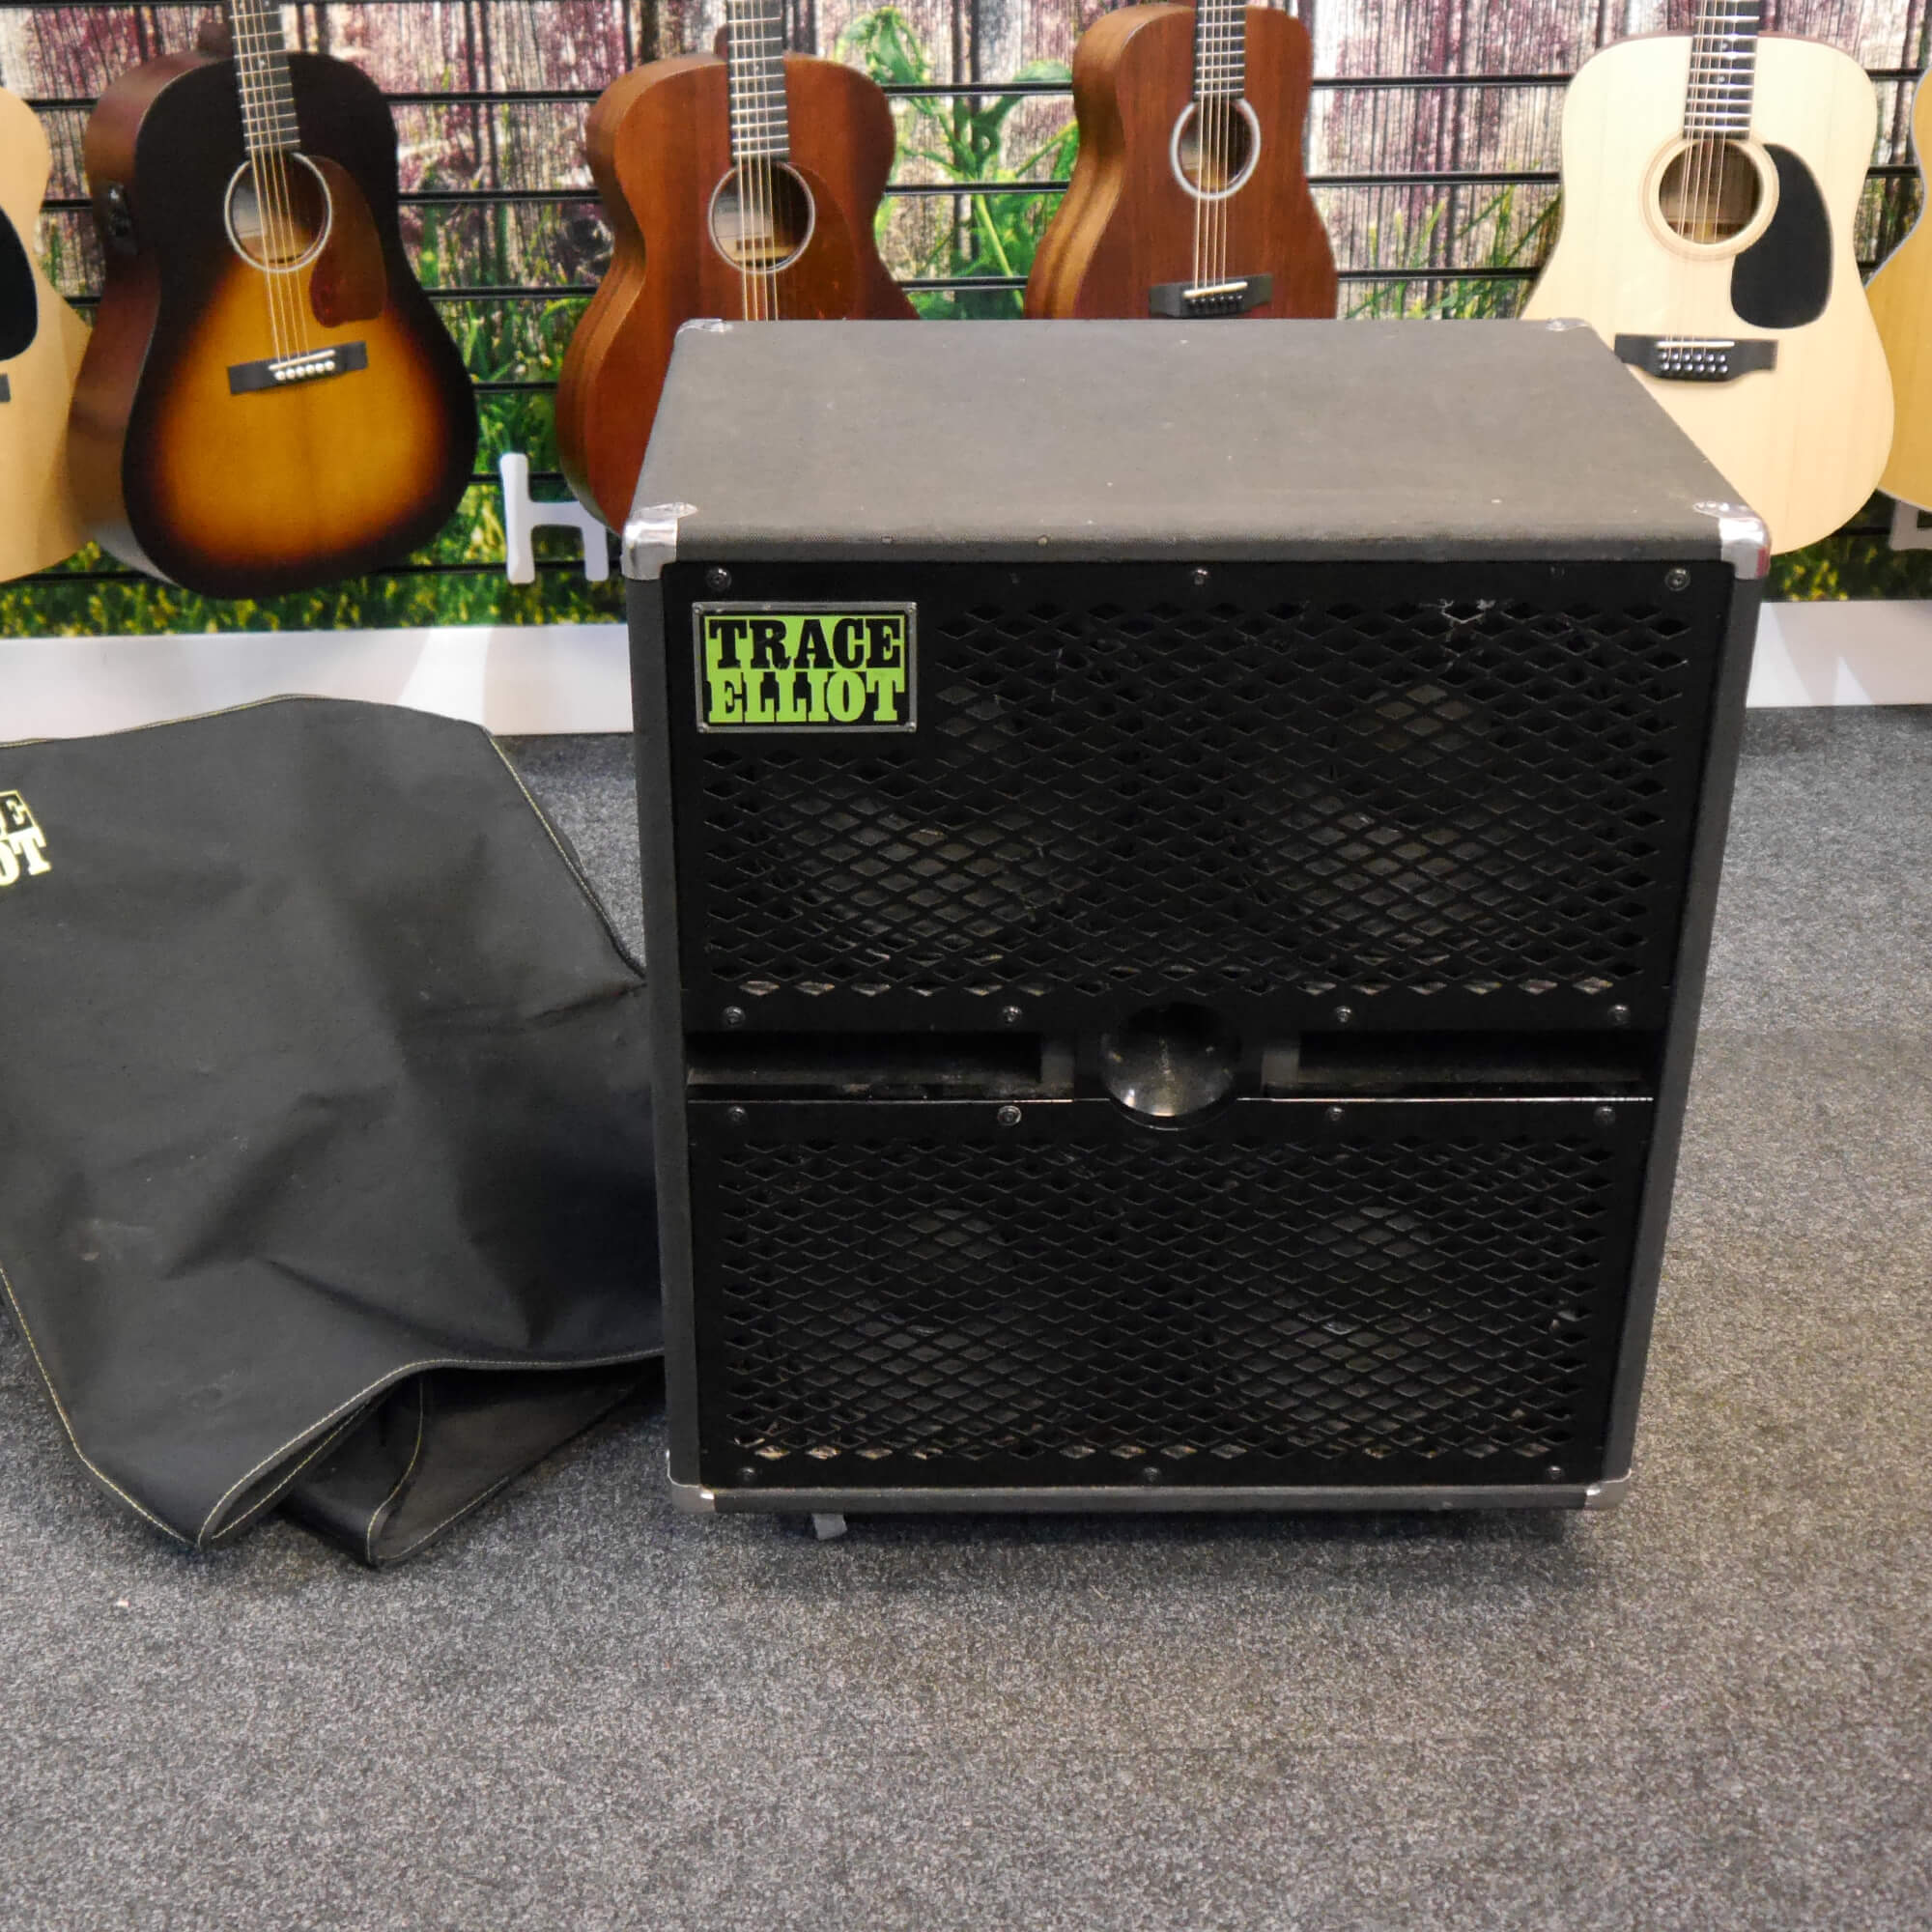 Trace Elliot 1048H 4x10 Bass Cabinet w/Cover - 2nd Hand **COLLECTION ONLY**